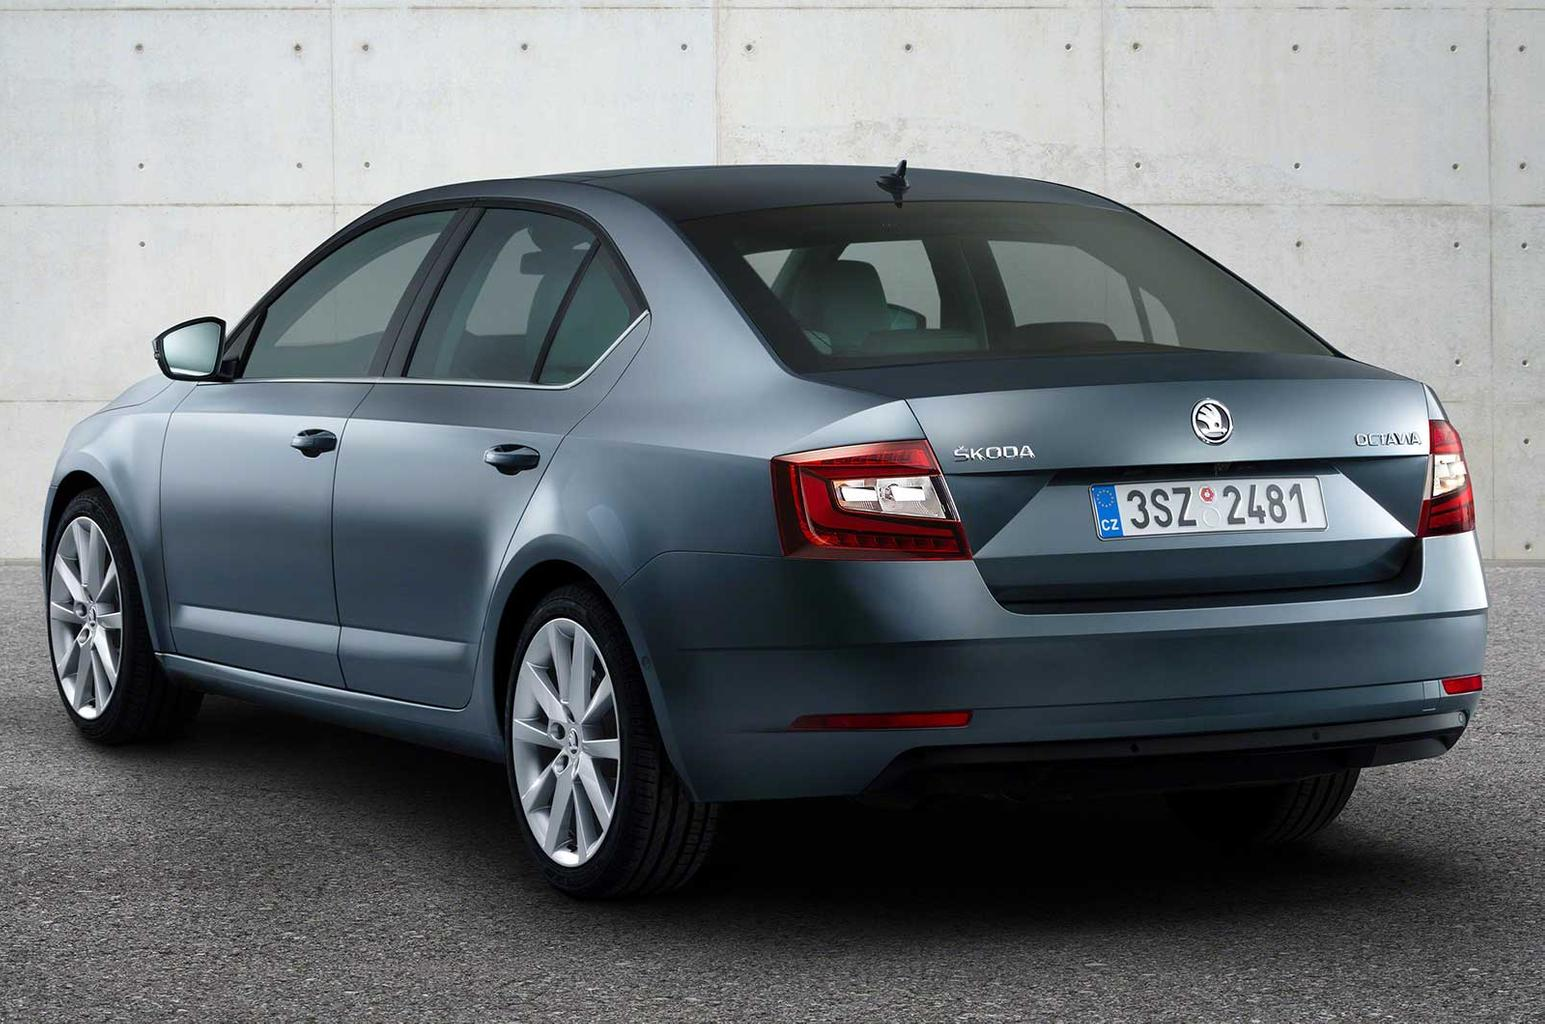 Skoda Octavia facelift revealed